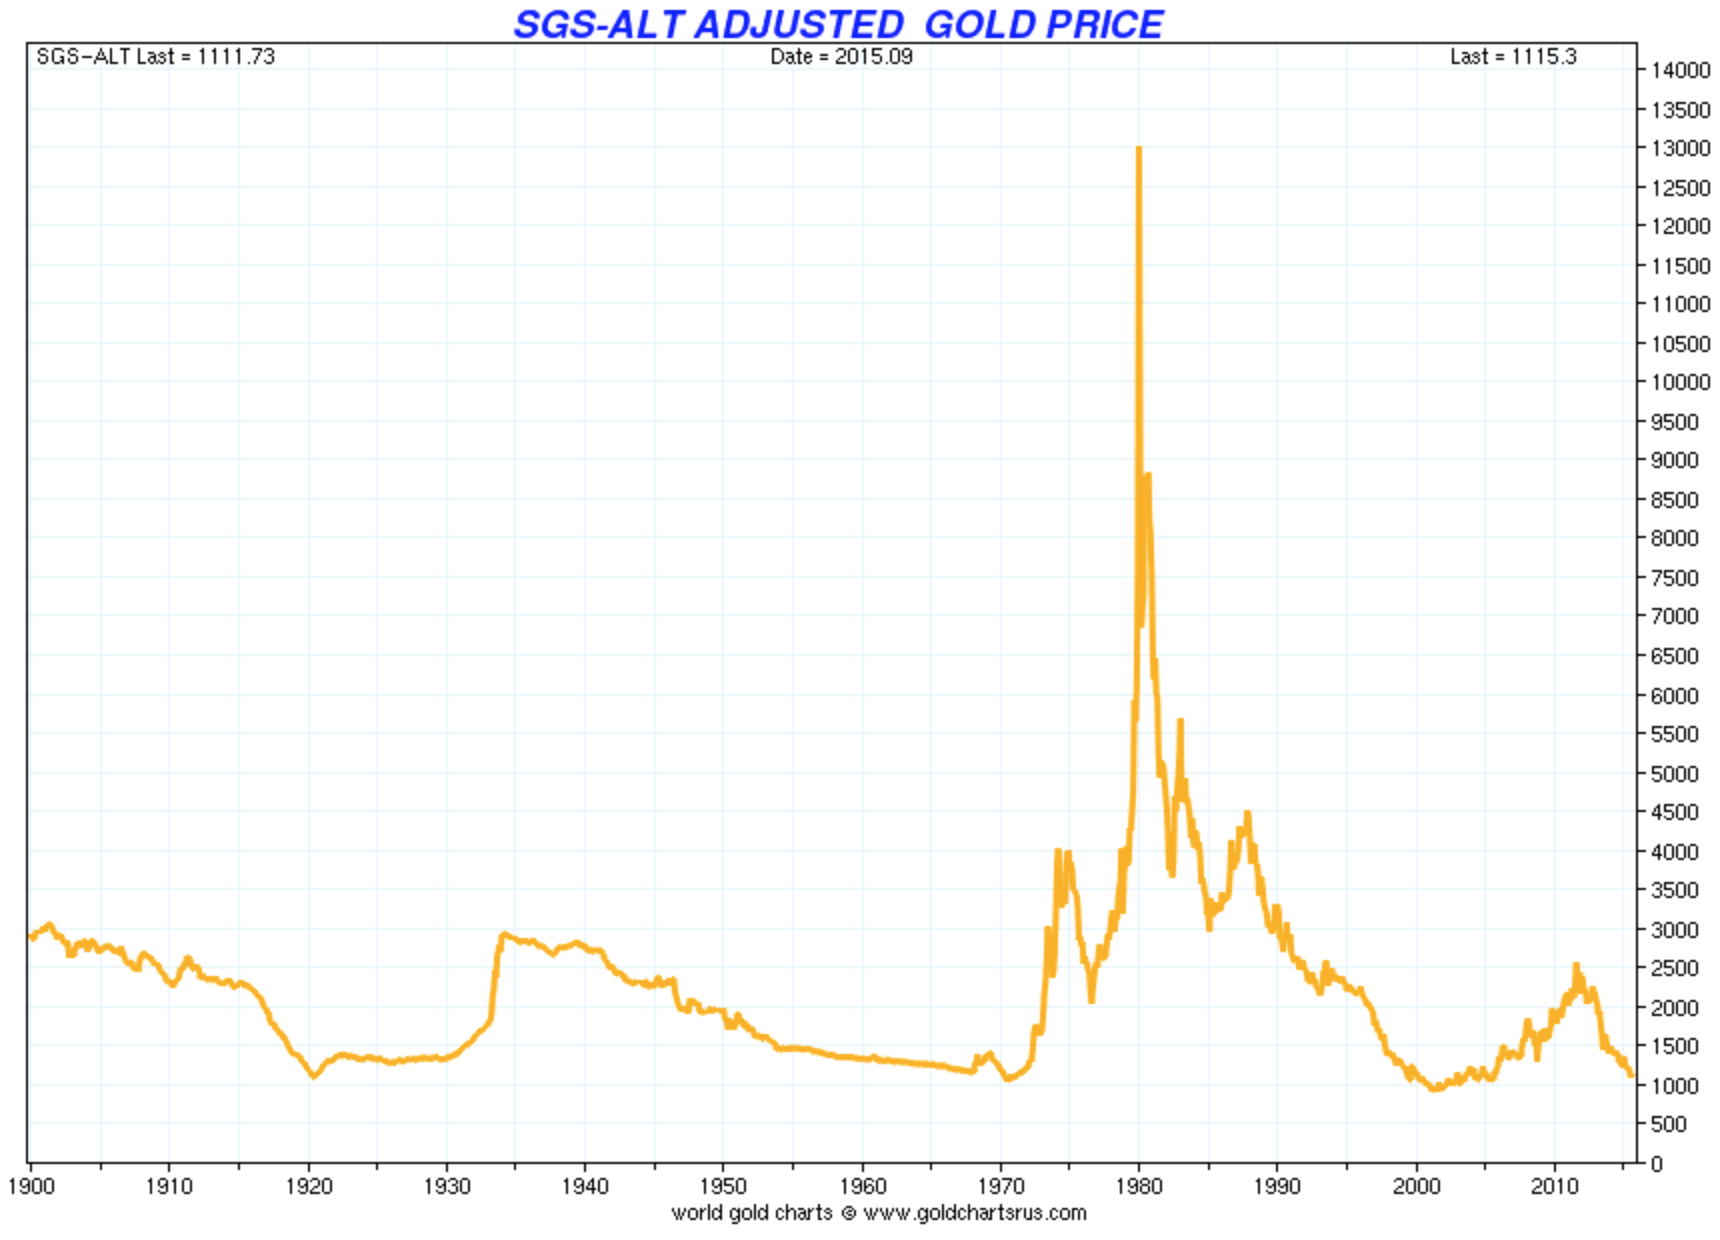 Gold price adjusted by official inflation using old formula